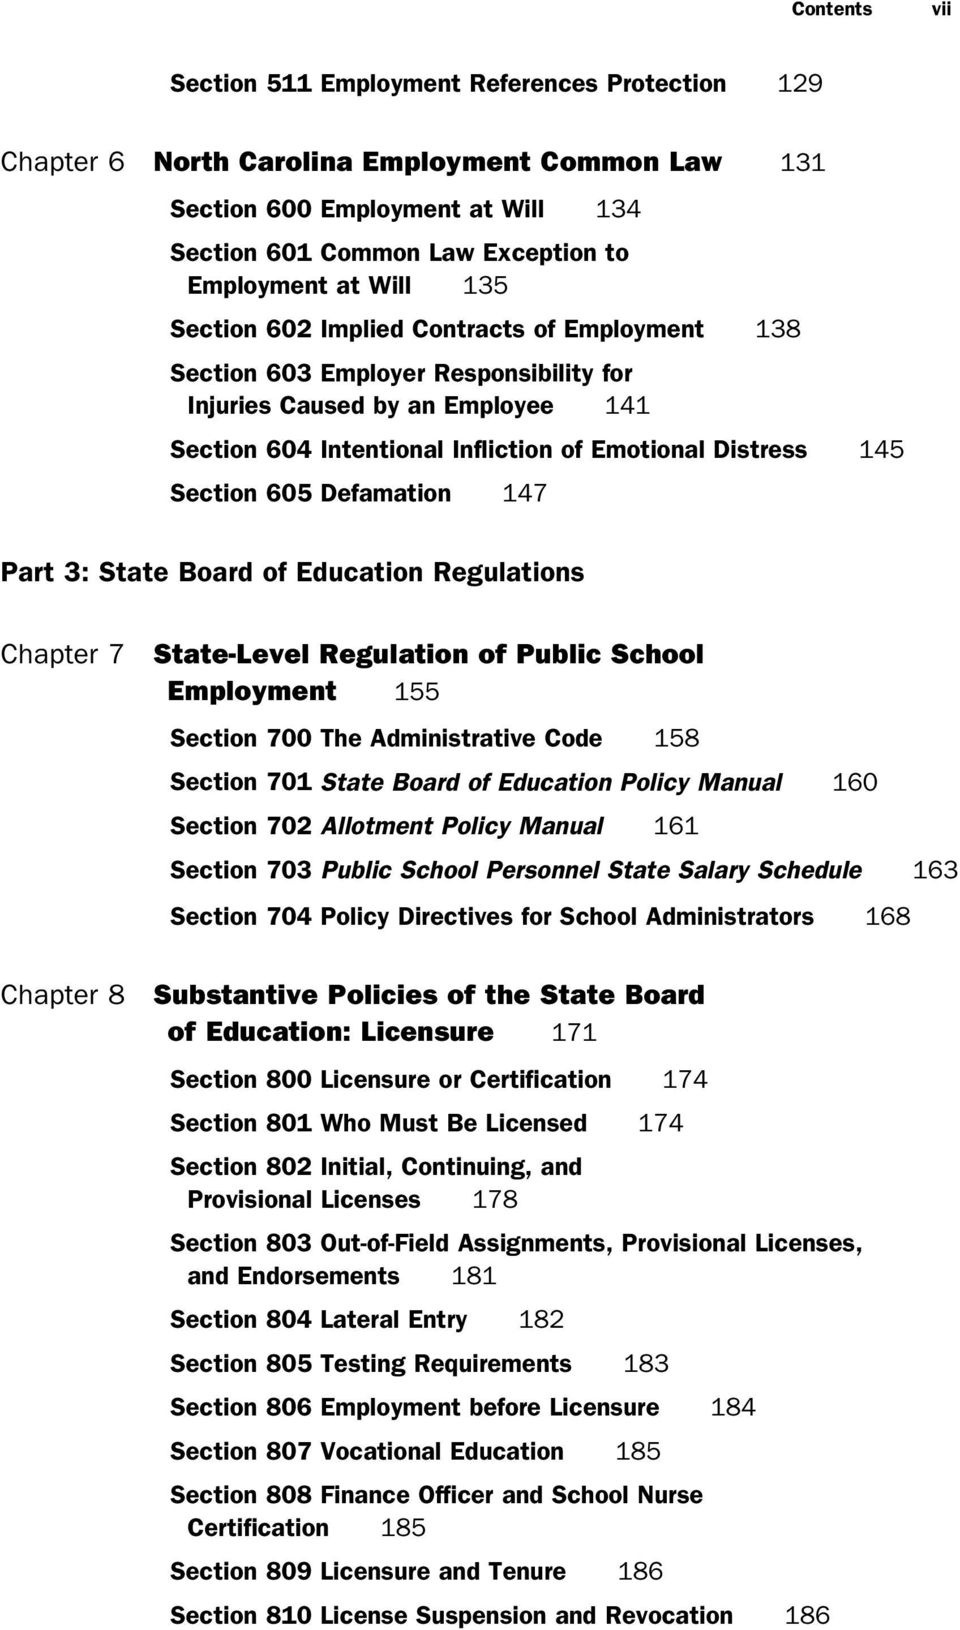 Section 605 Defamation 147 Part 3: State Board of Education Regulations Chapter 7 Chapter 8 State-Level Regulation of Public School Employment 155 Section 700 The Administrative Code 158 Section 701